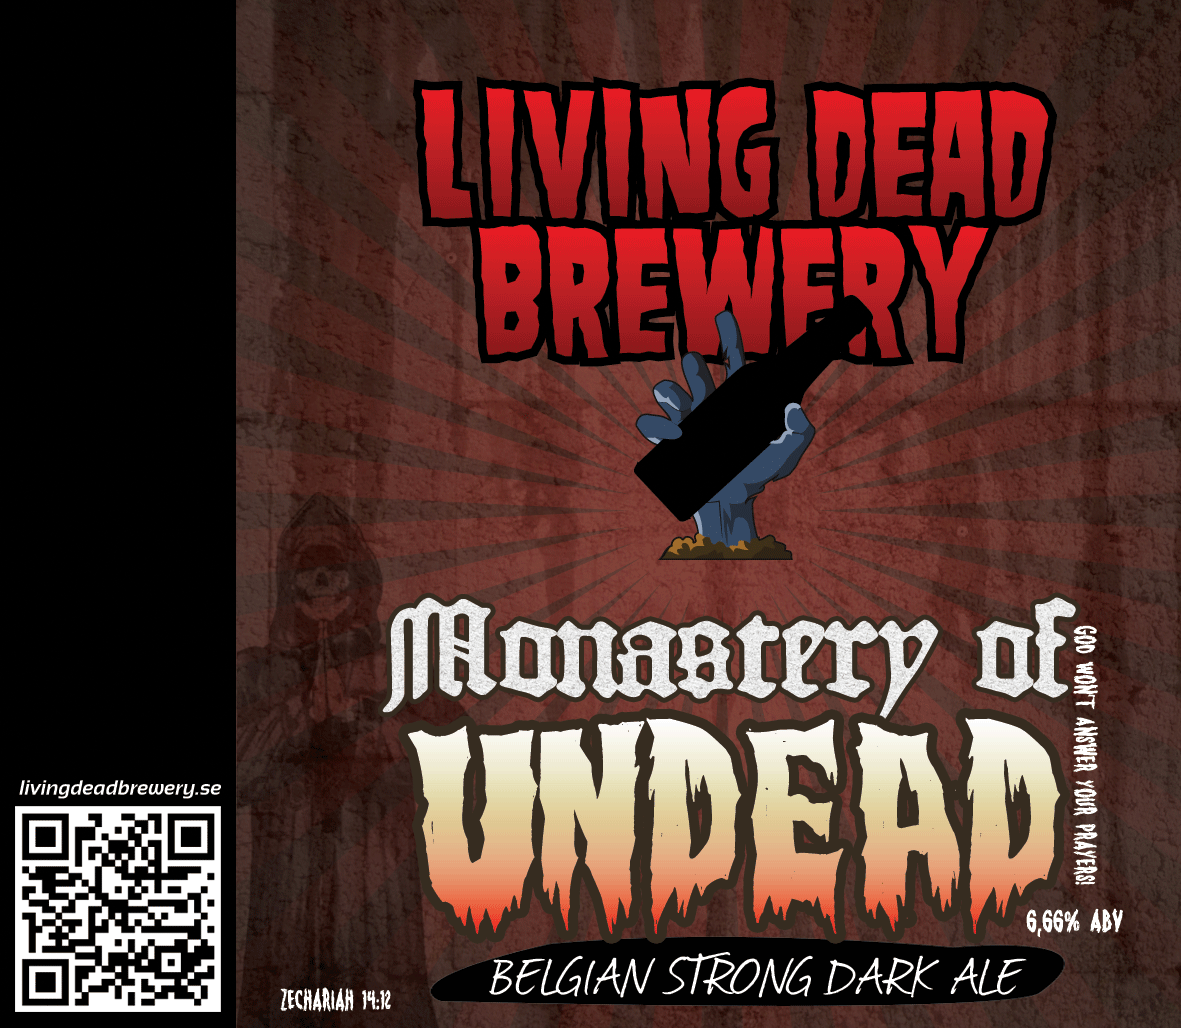 Monastery of Undead [Belgian Strong Dark Ale]